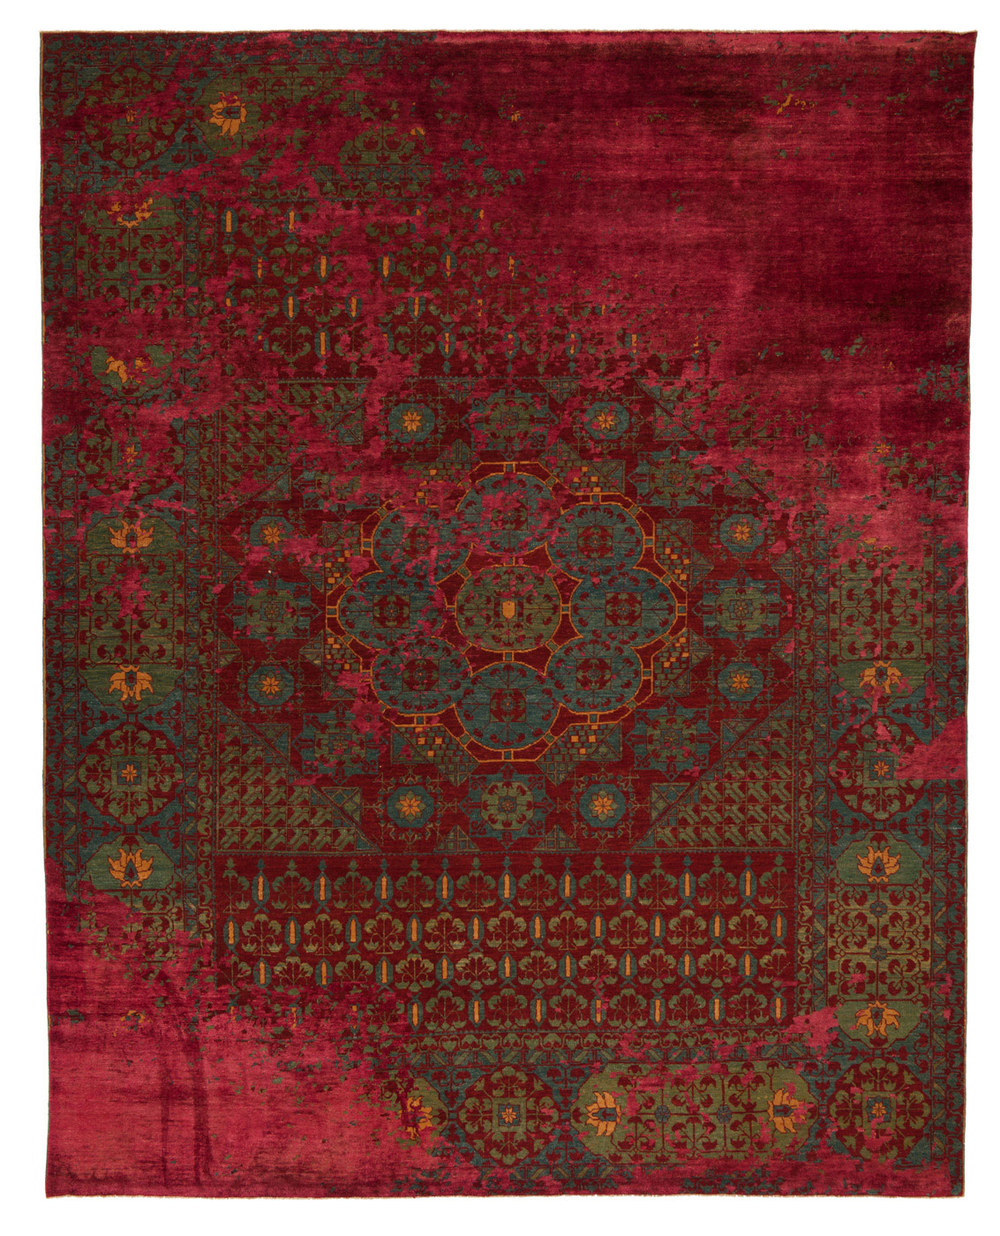 ErasedHeritage_4500224_MamlukKensingtonRaved_red-redSilk_250x310cm.jpg